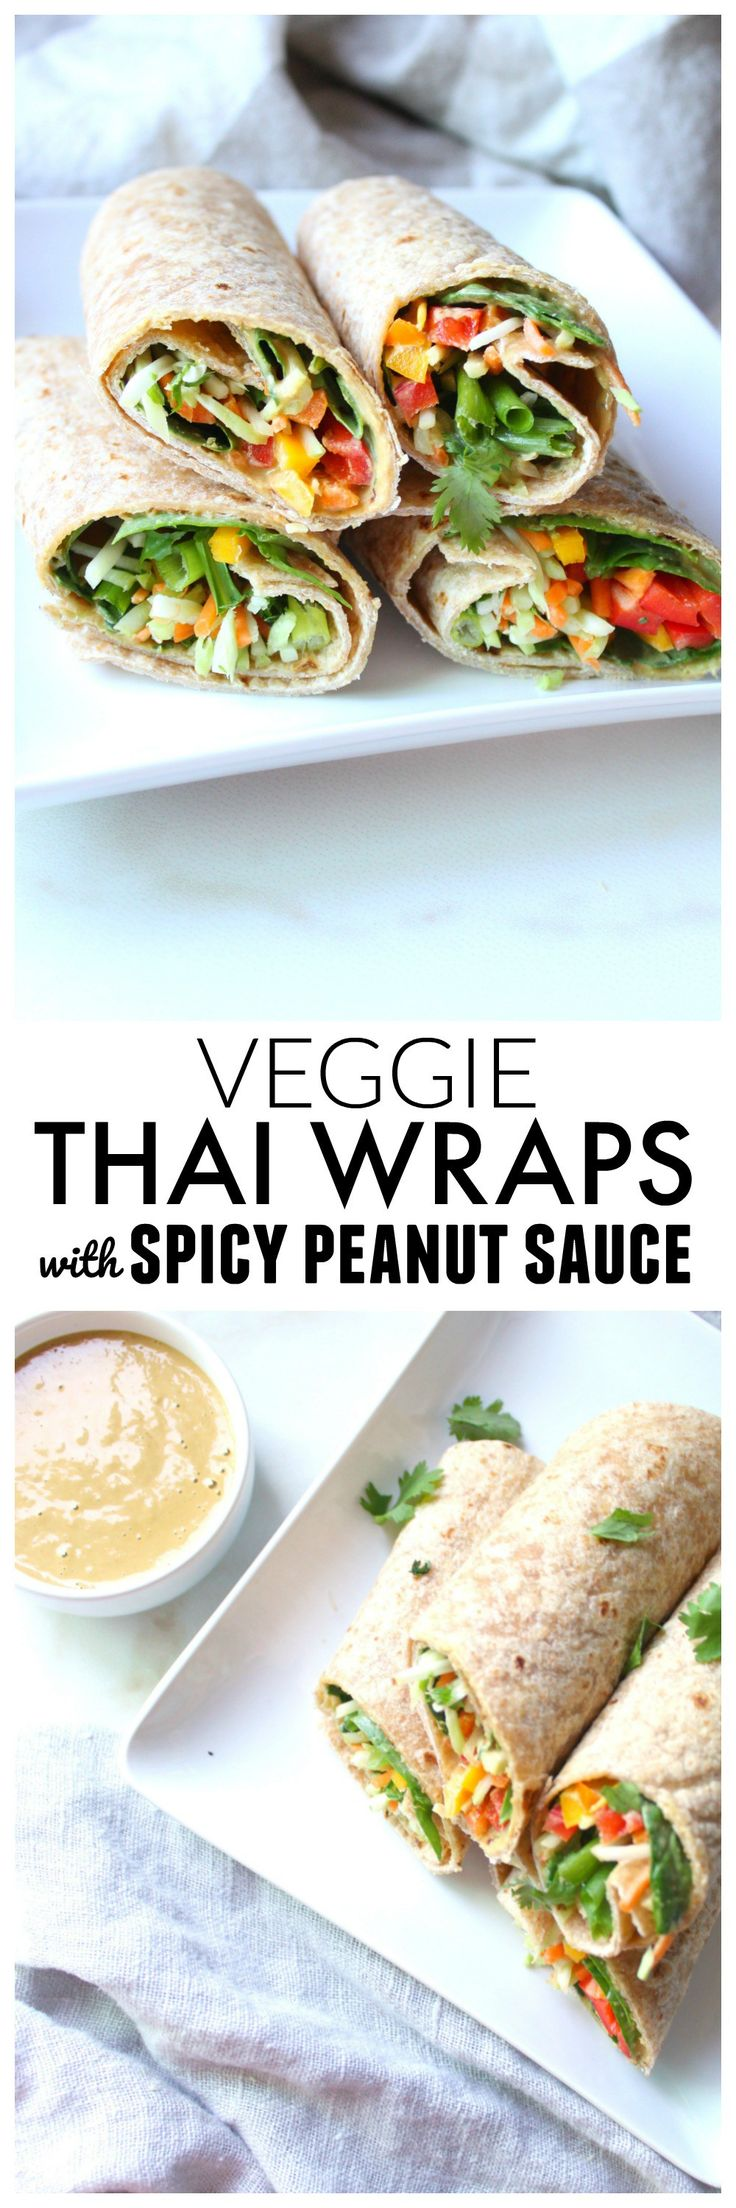 These Veggie Thai Wraps with Spicy Peanut Sauce make a simple and delicious lunch, snack or dinner. Perfect for back to school! | ThisSavoryVegan.com